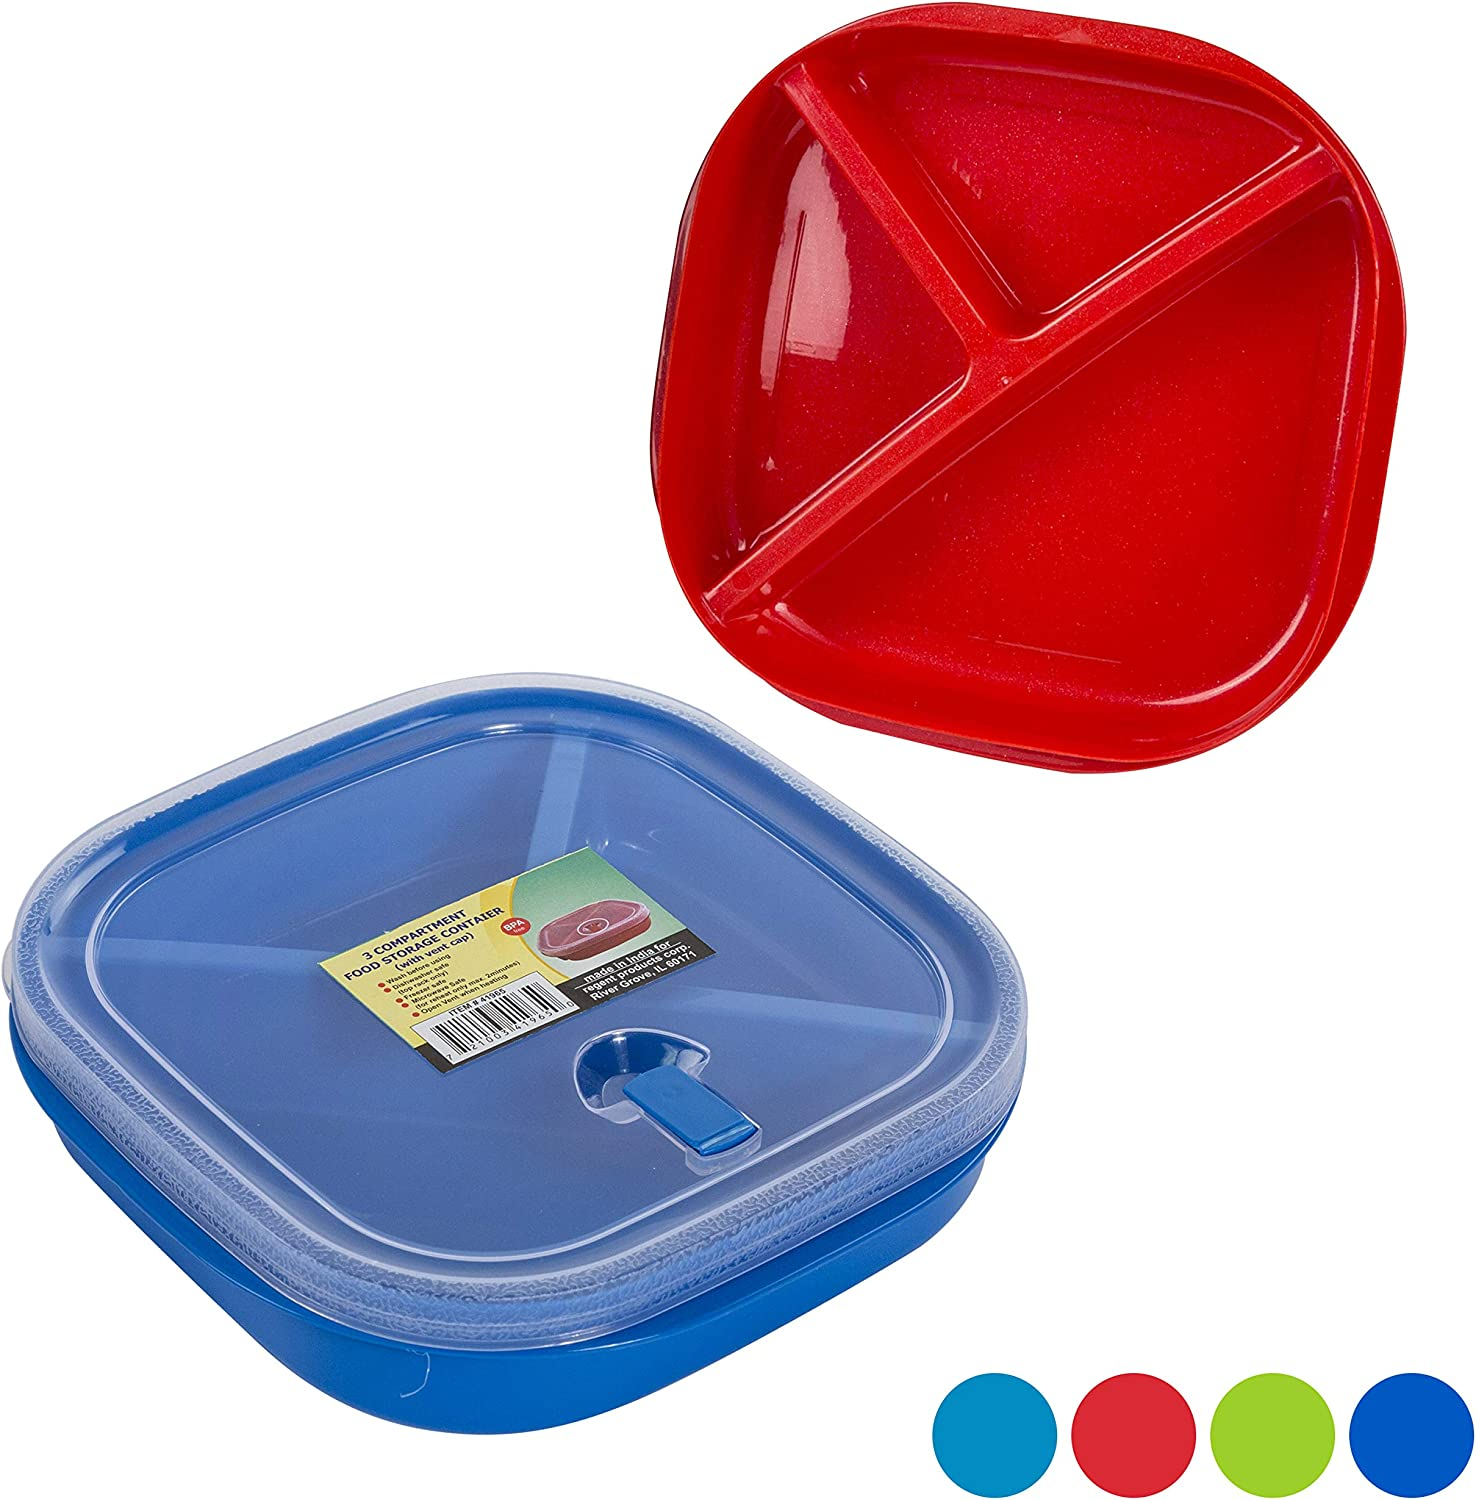 (Set of 3) Square Microwave Food Storage Tray Containers - 3 Section/Compartment Divided Plates w/Vented Lid - Assorted Colors